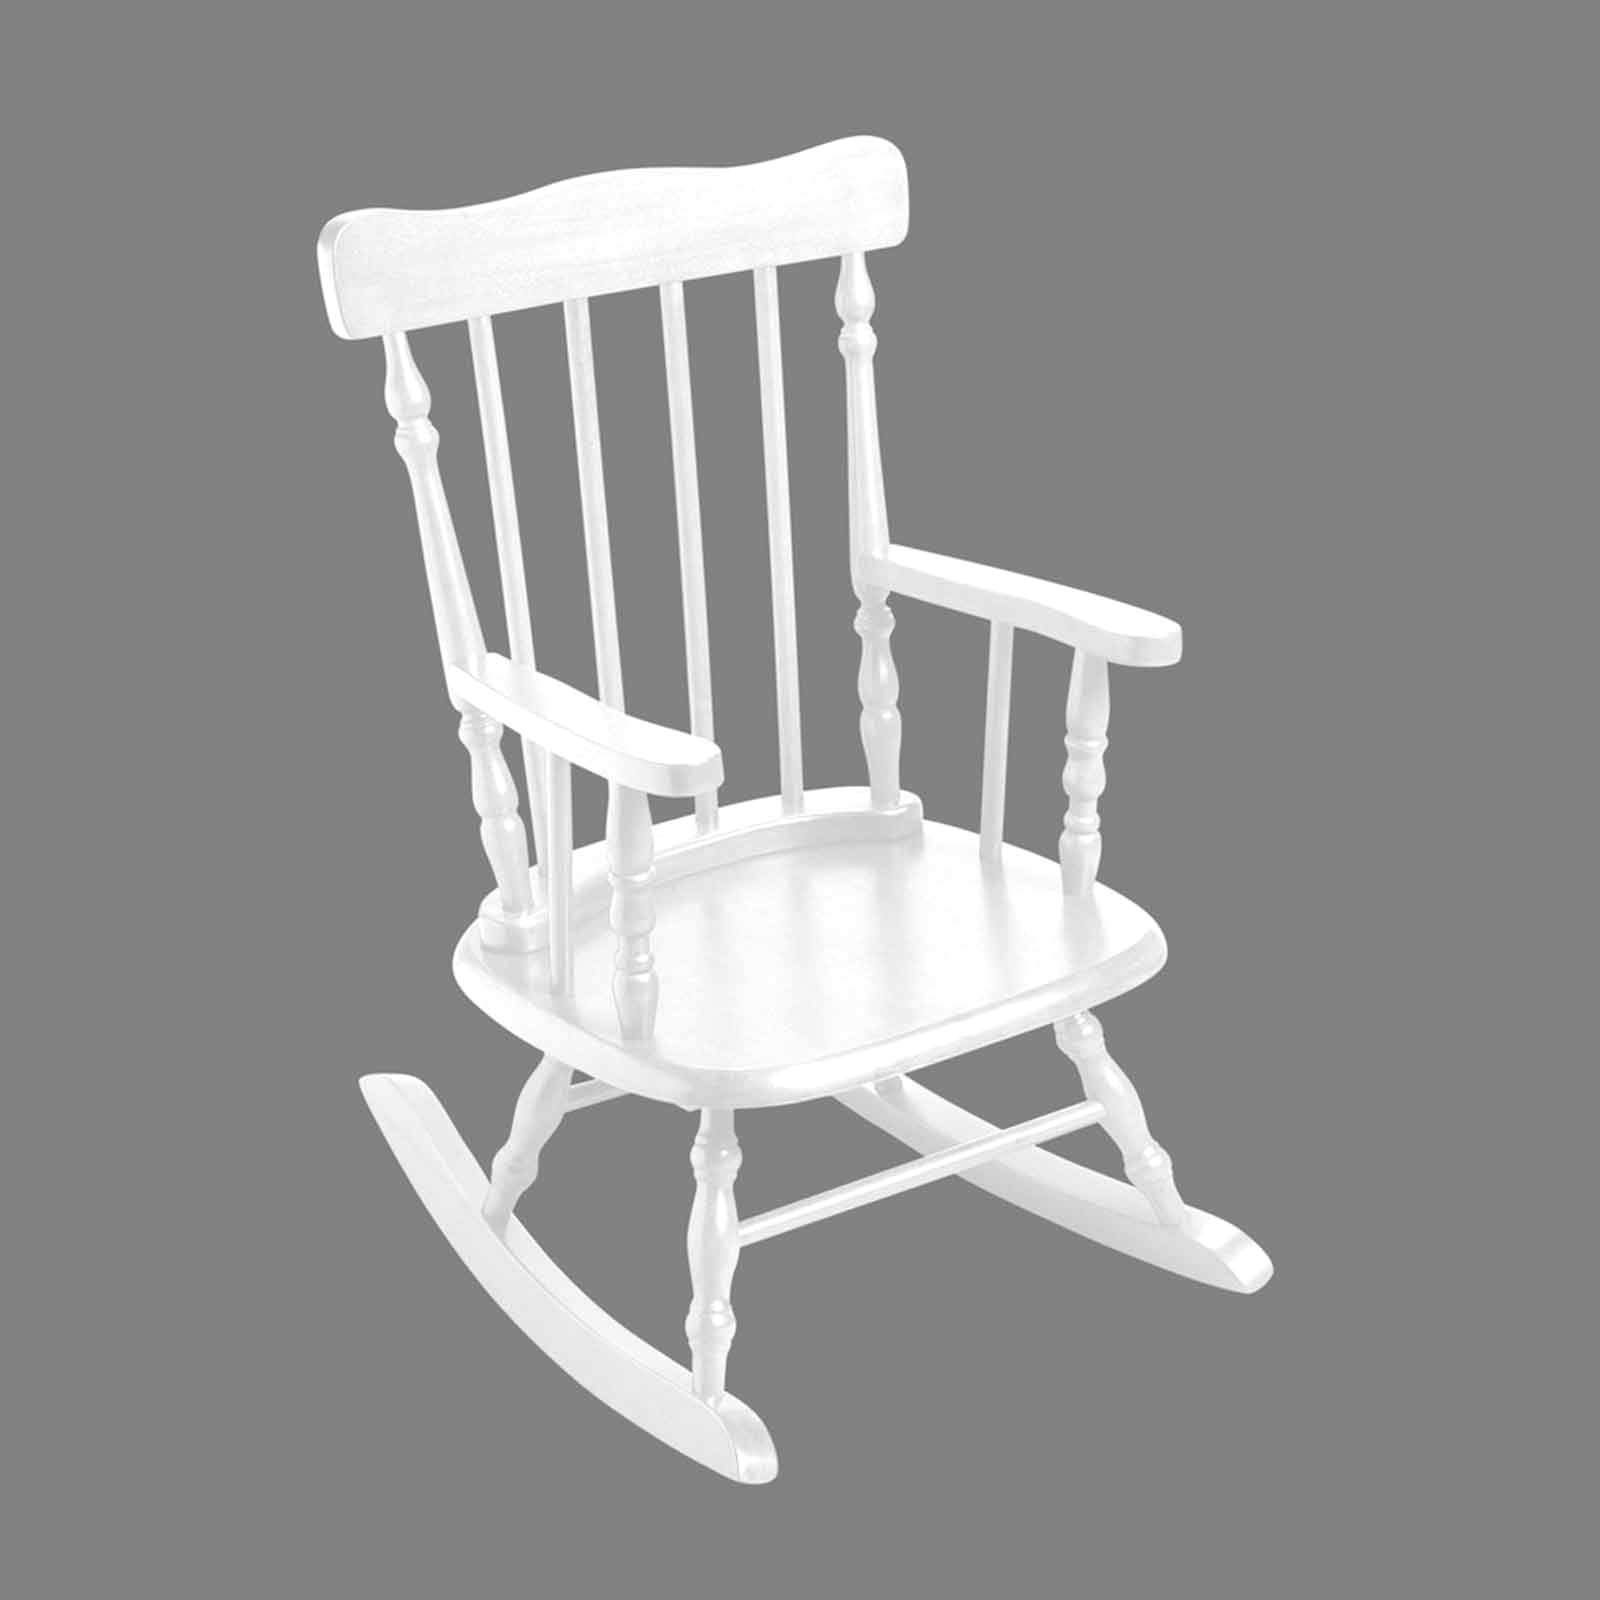 unfinished wooden chairs for toddlers dorm chair bed bath beyond gift mark 3700w solid wood children 39s rocking sears